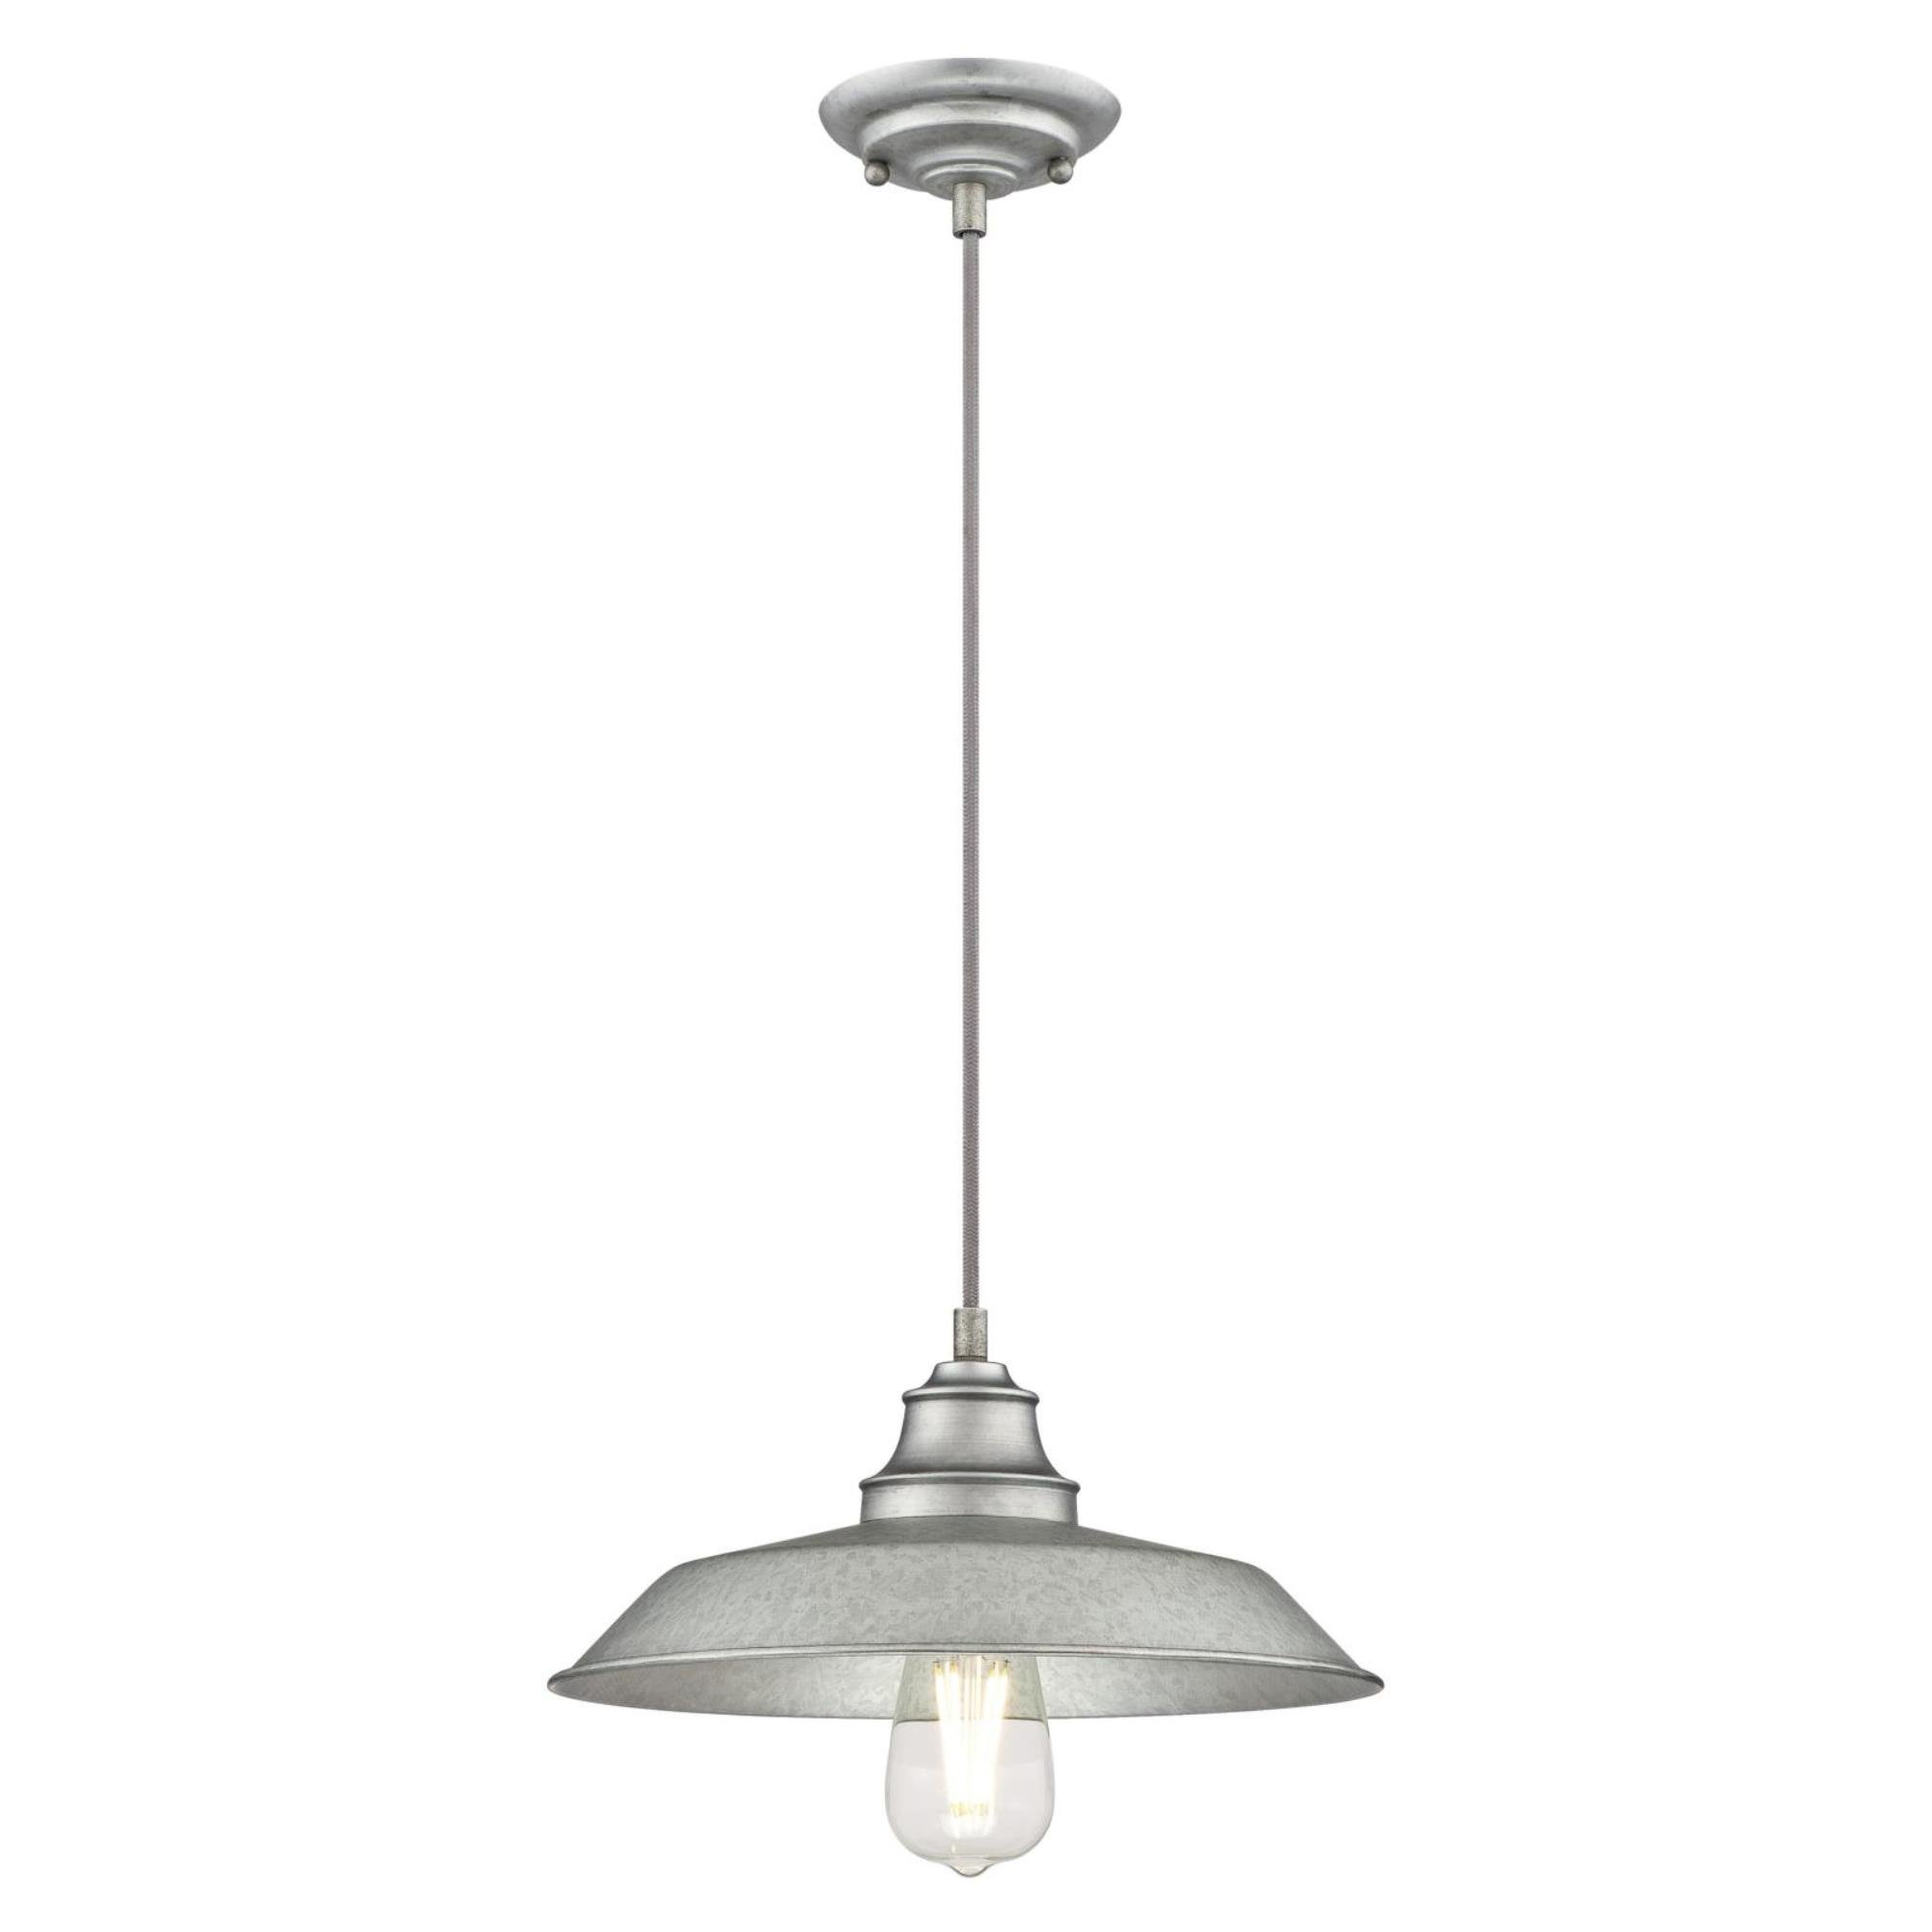 Westinghouse  6354600 Iron Hill One-Light Indoor Pendant, Galvanized Steel Finish with Metal Shade